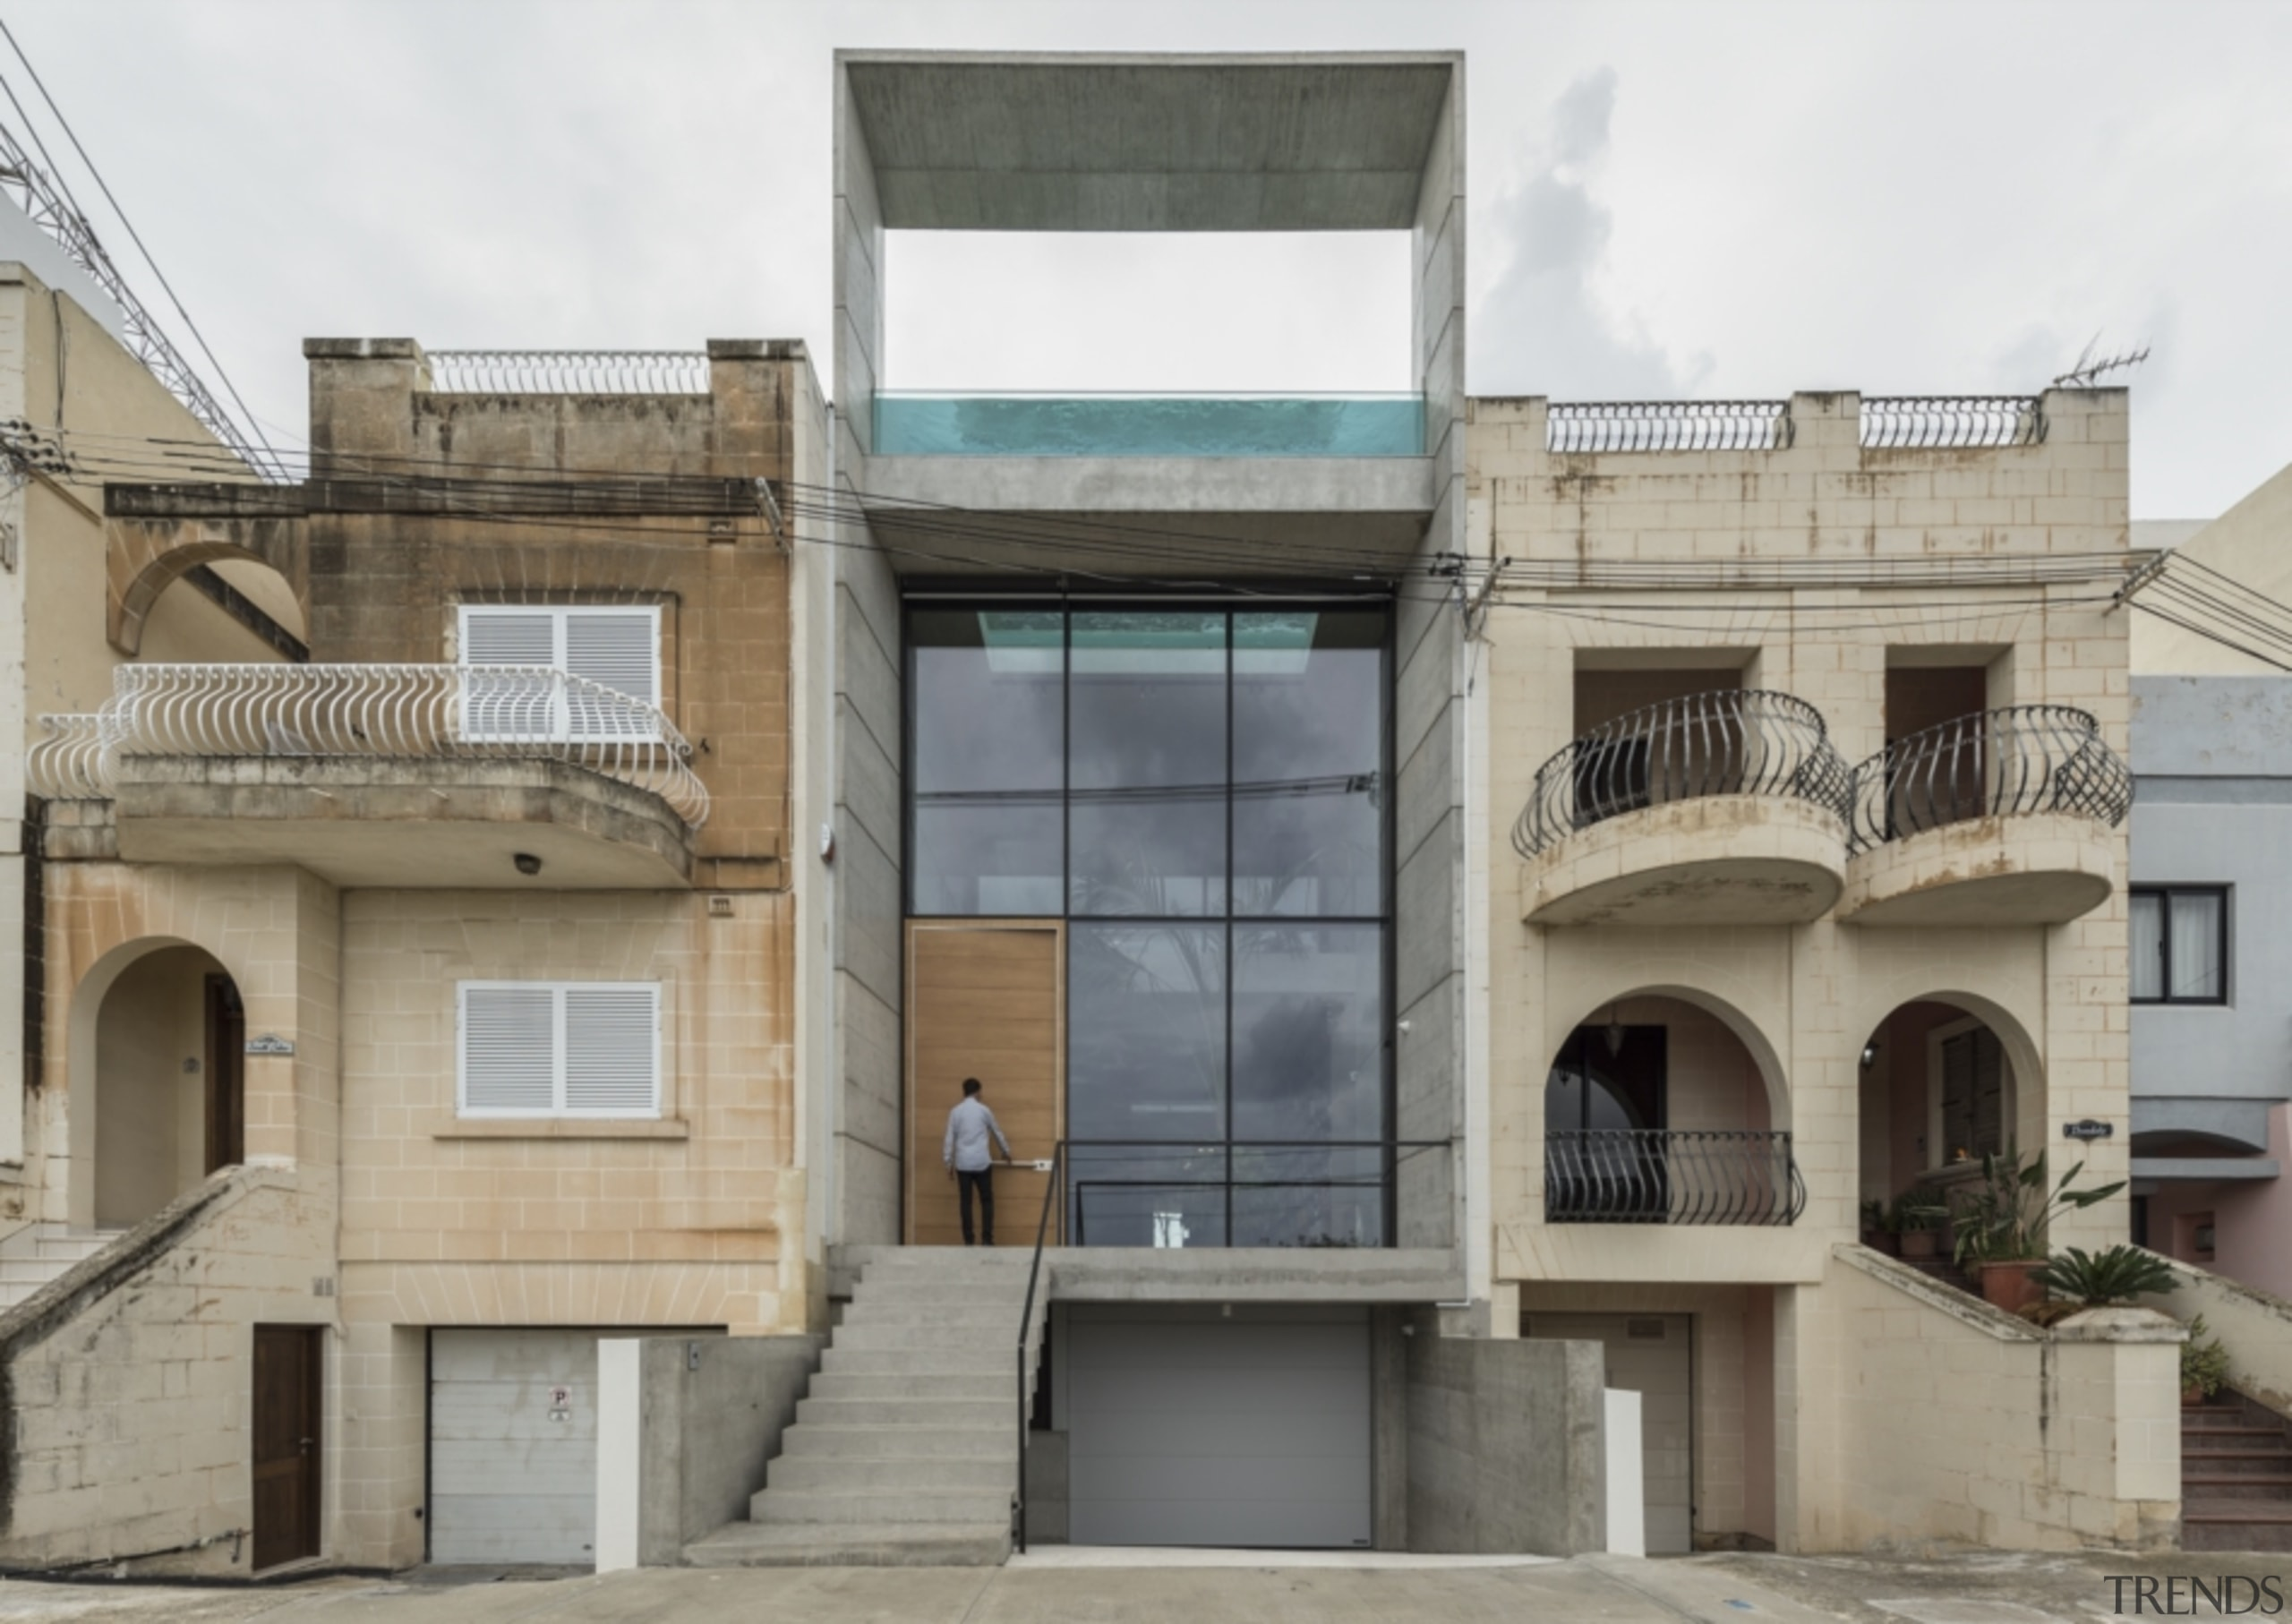 Located in a neighbourhood formed by traditional buildings, apartment, architecture, balcony, building, facade, home, house, material property, neighbourhood, property, real estate, residential area, urban area, urban design, window, gray, pool, rooftop pool